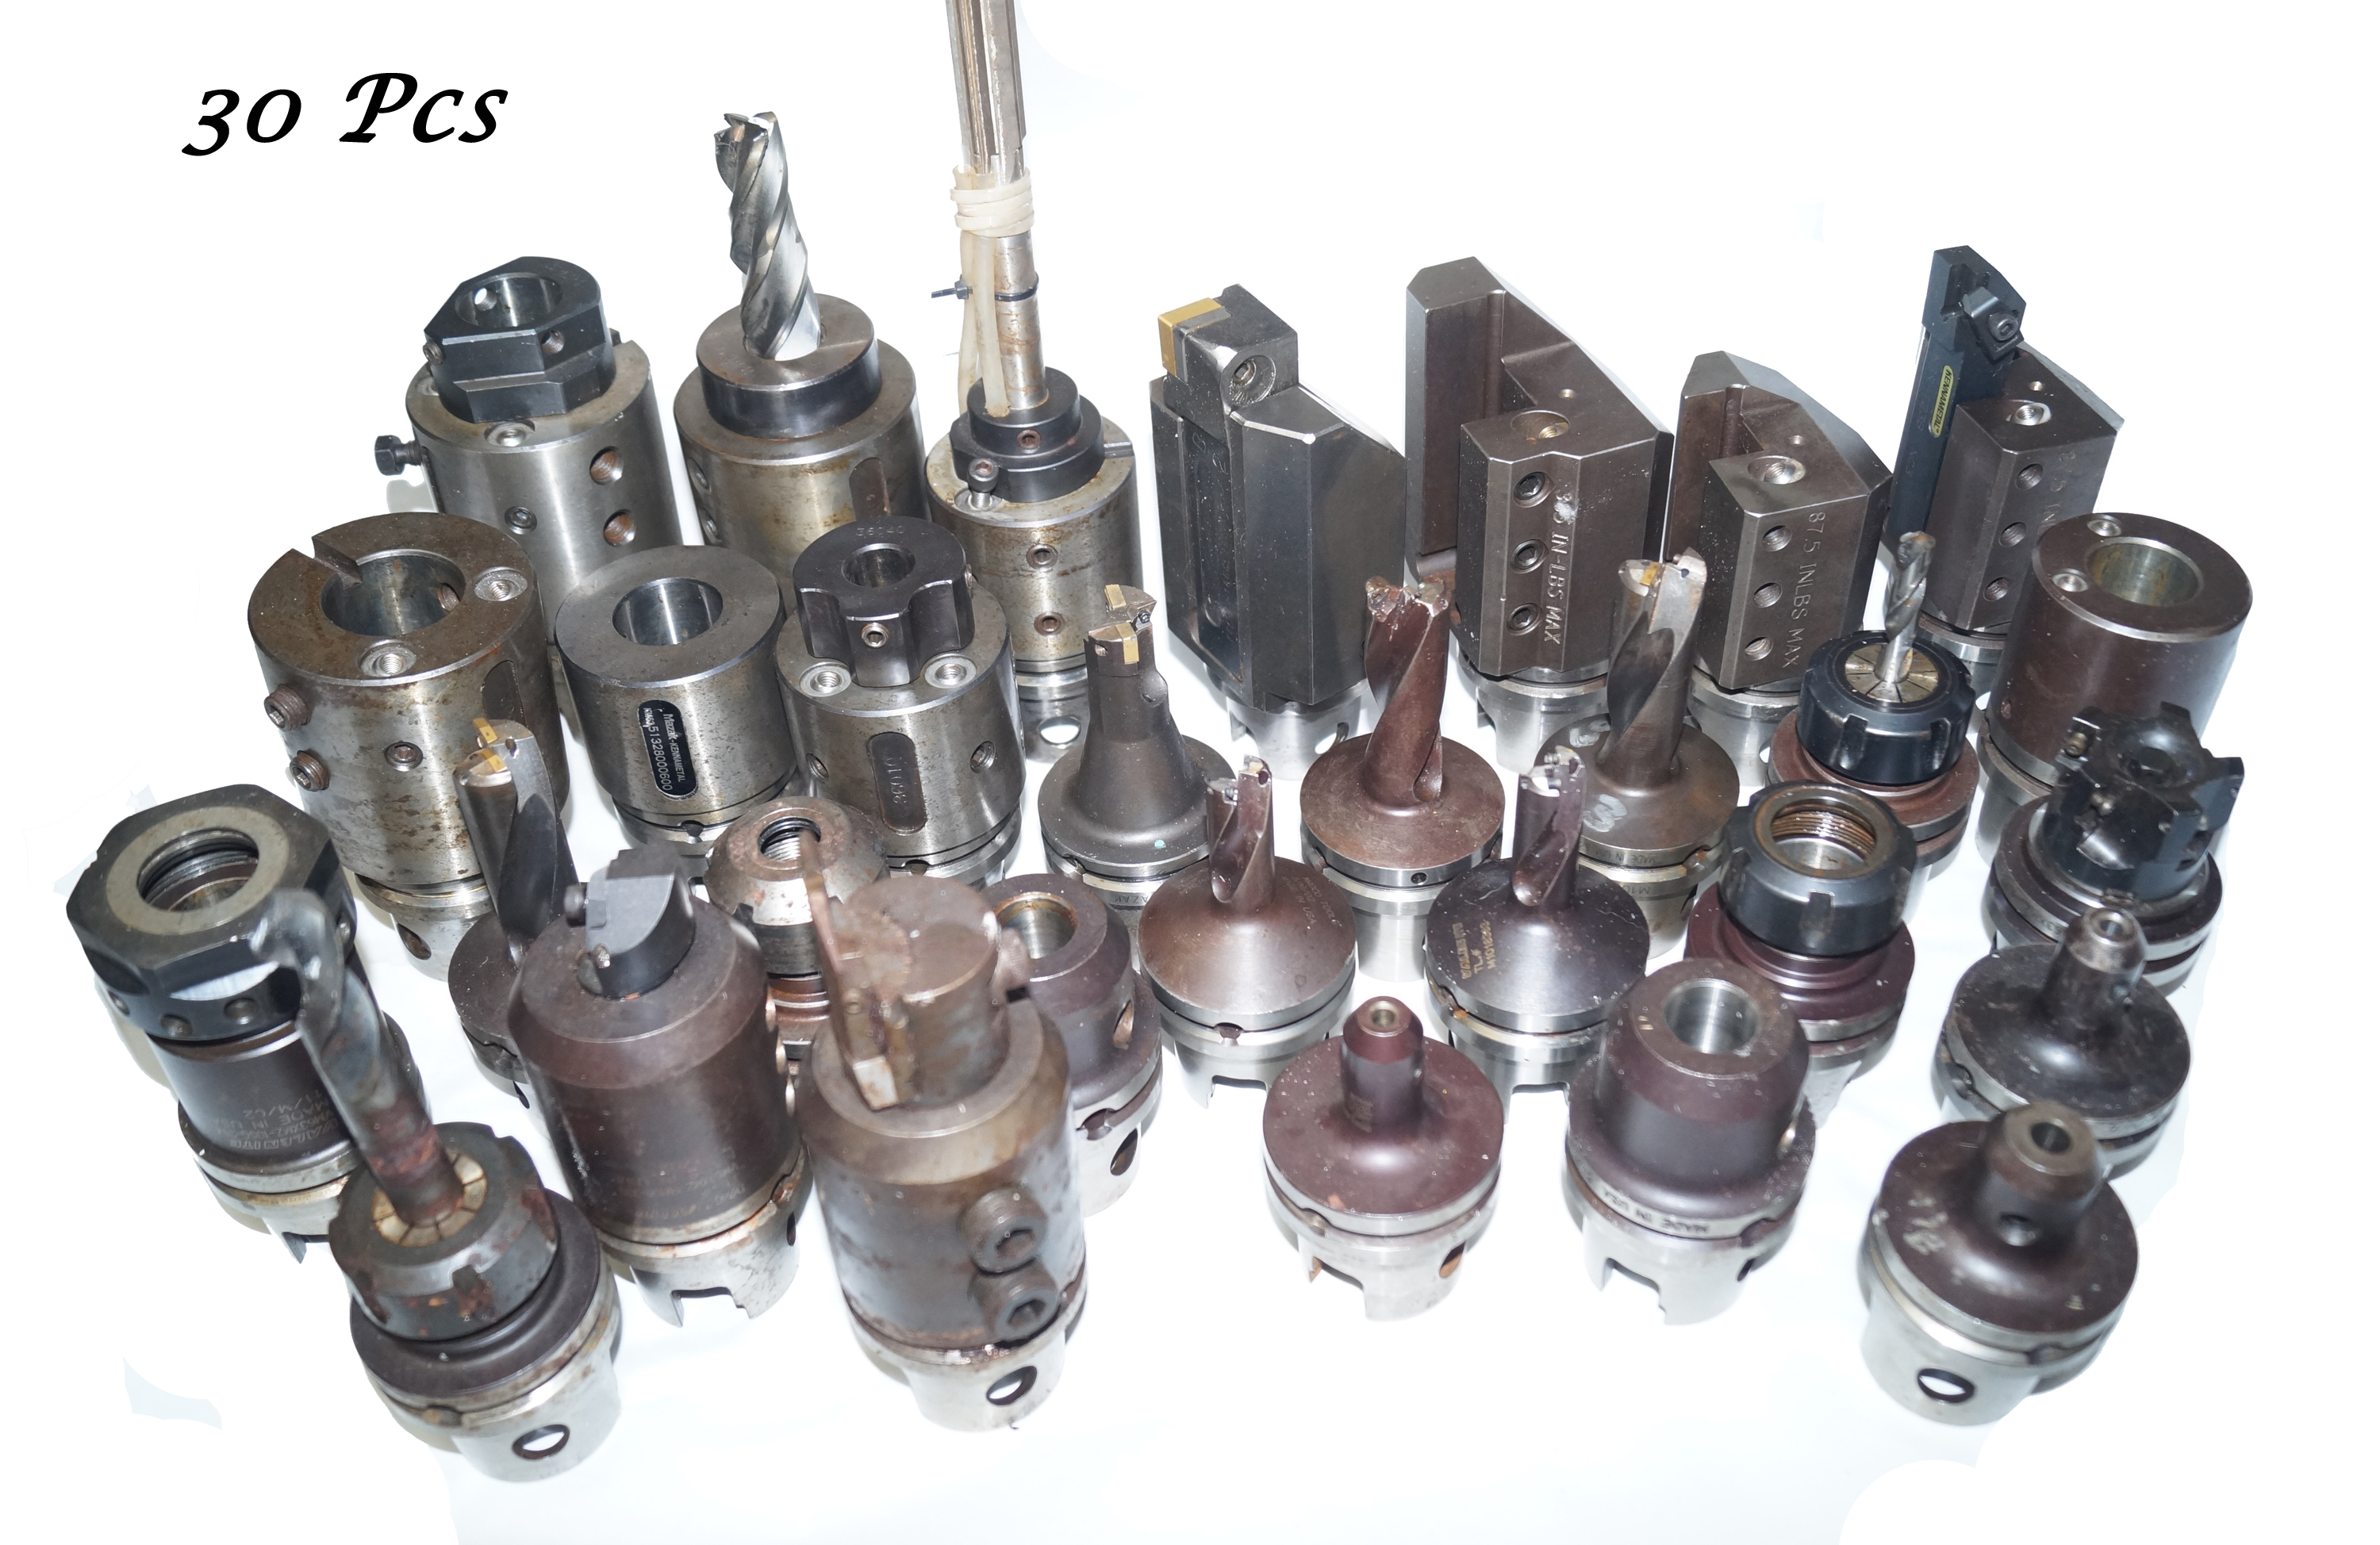 42 Pieces of VM63/KM63 Toolholders